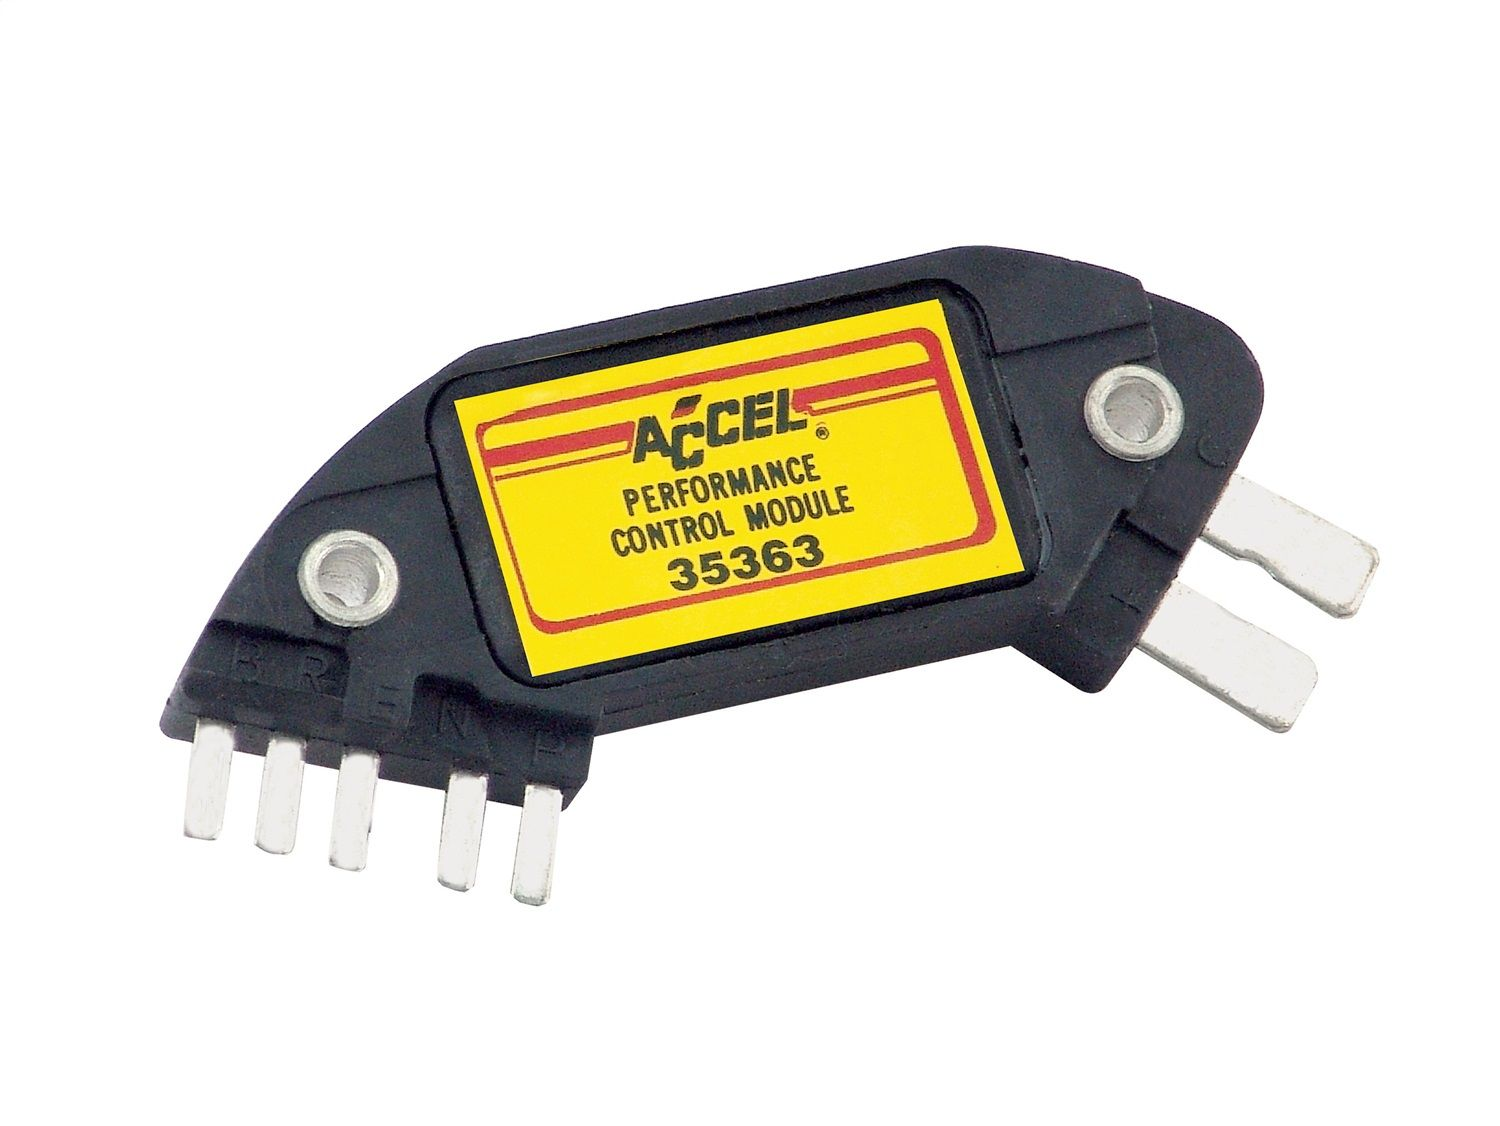 Cadillac DeVille Ignition Control Module Replacement